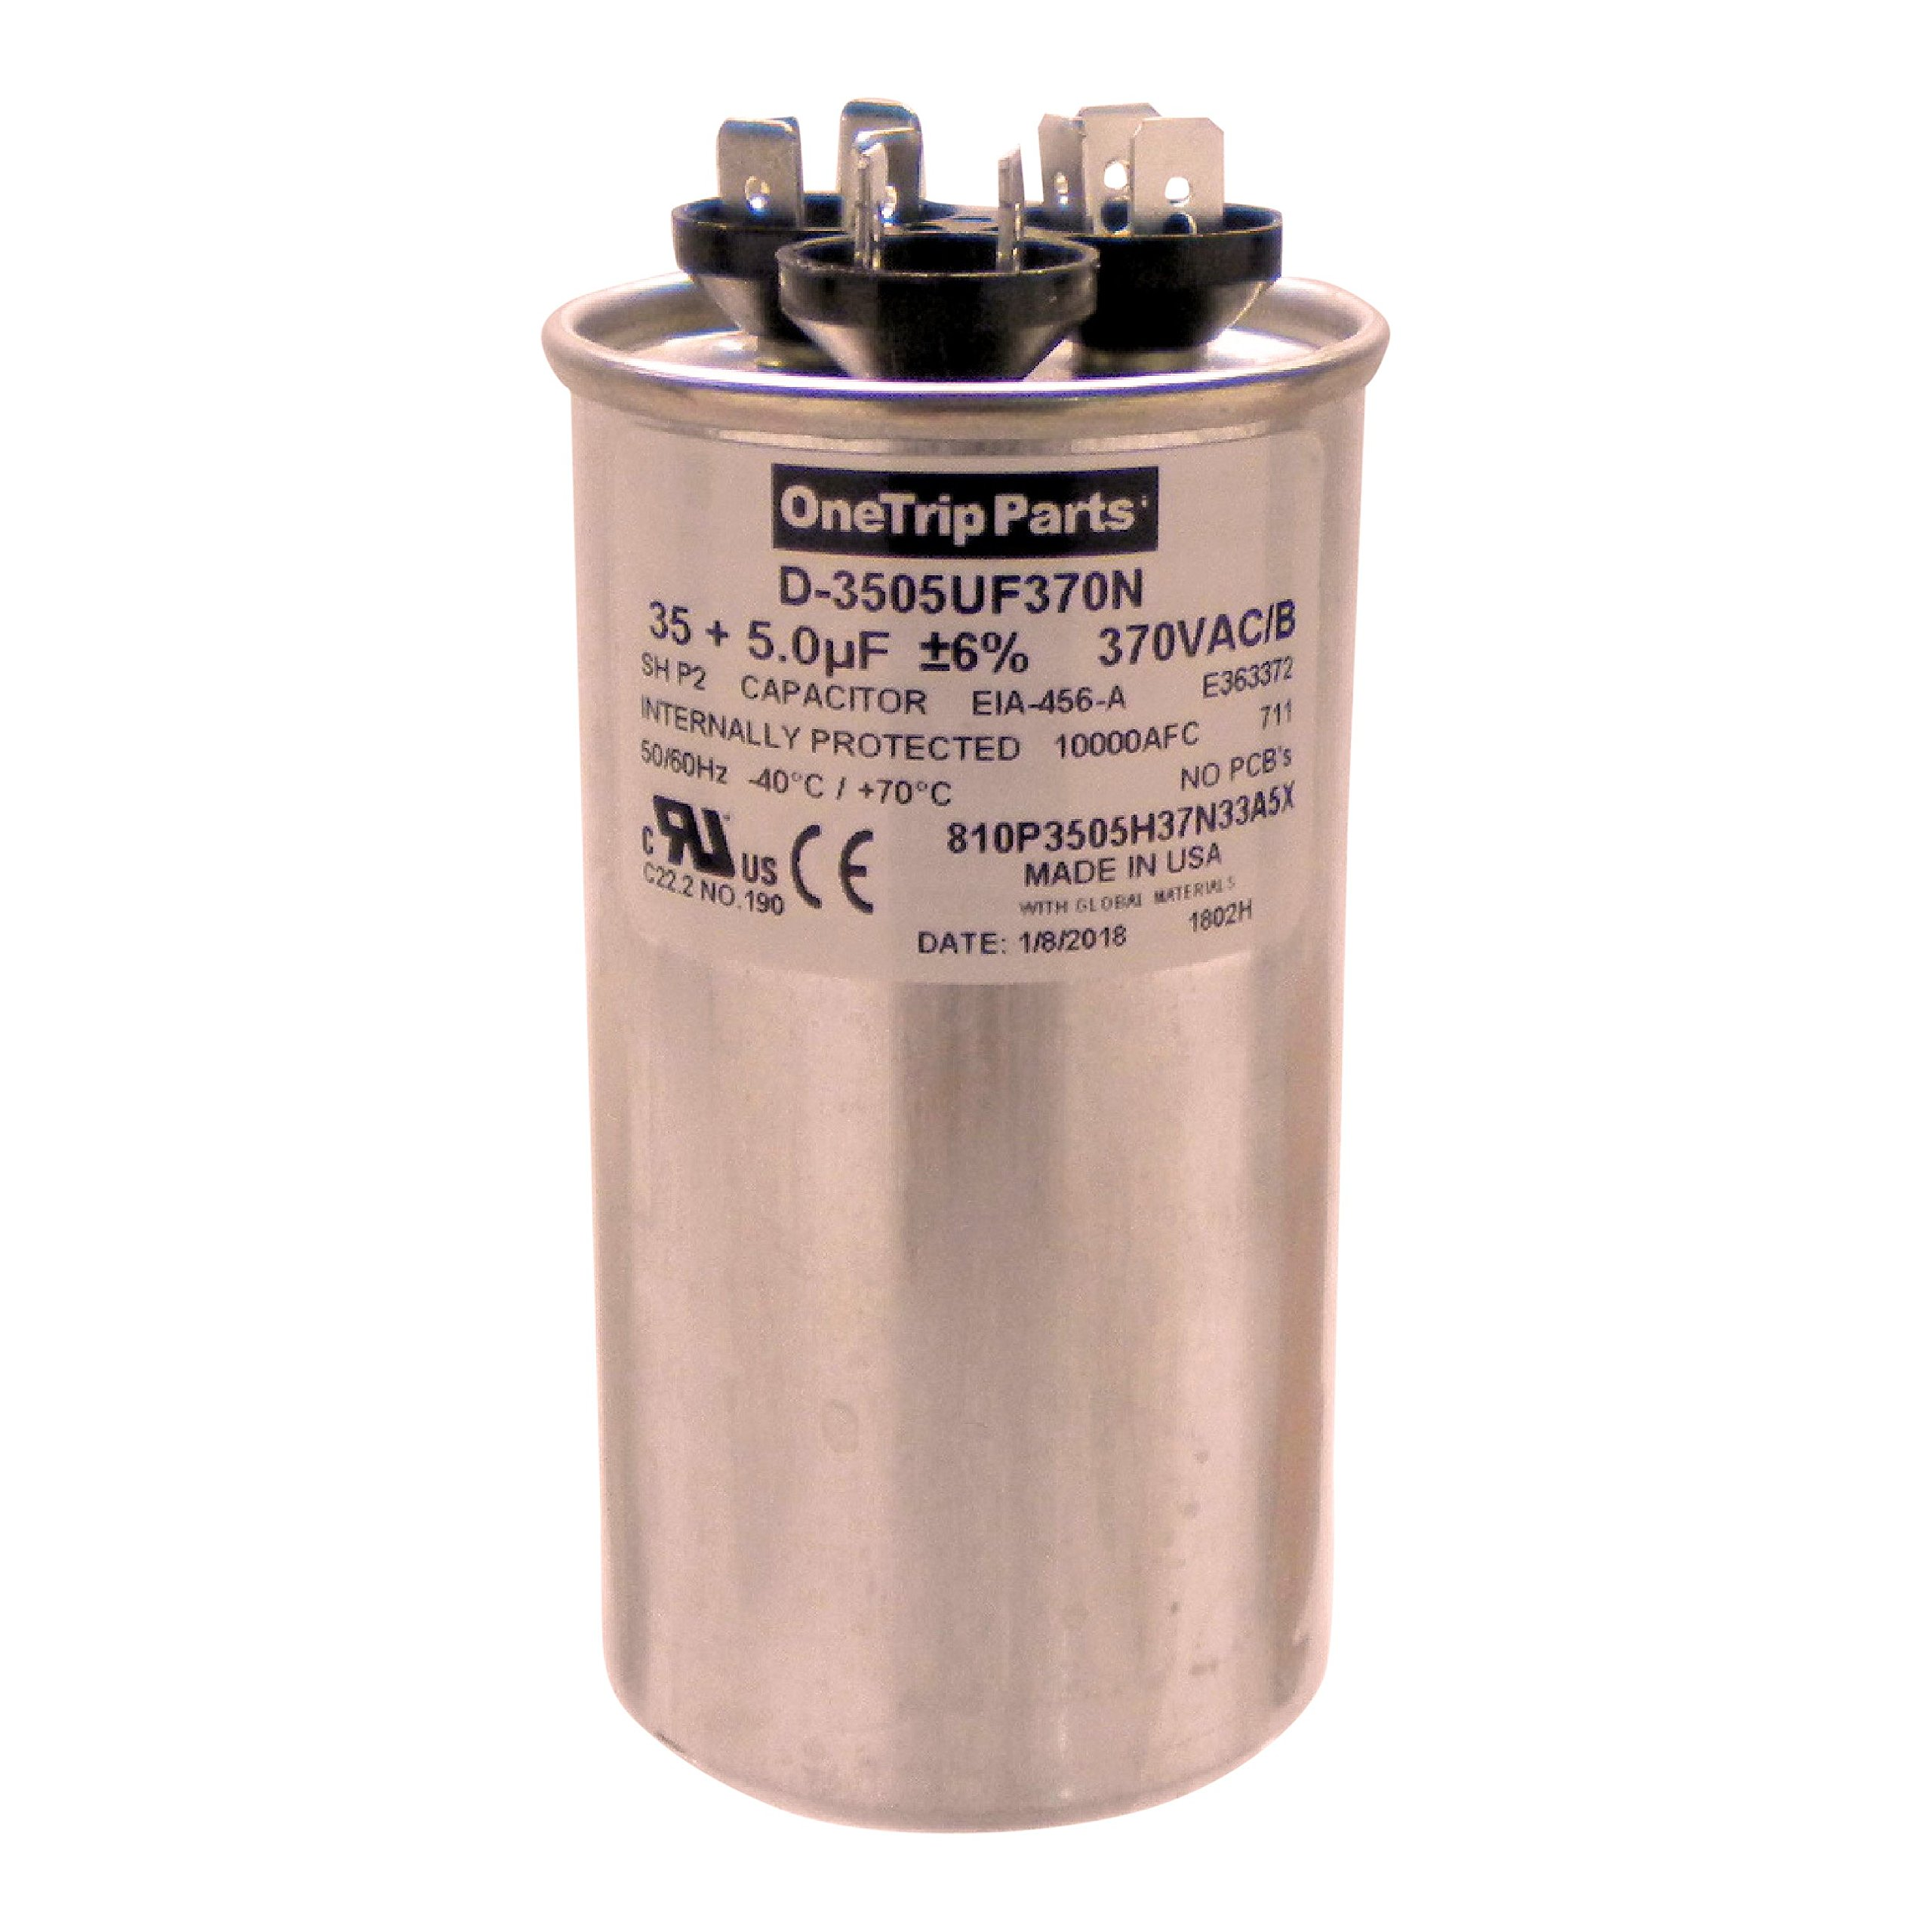 OneTrip Parts USA Run Capacitor 35+5 uF 35/5 MFD 370 VAC Round Replacement For York Coleman Evcon Luxaire S1-02423998700